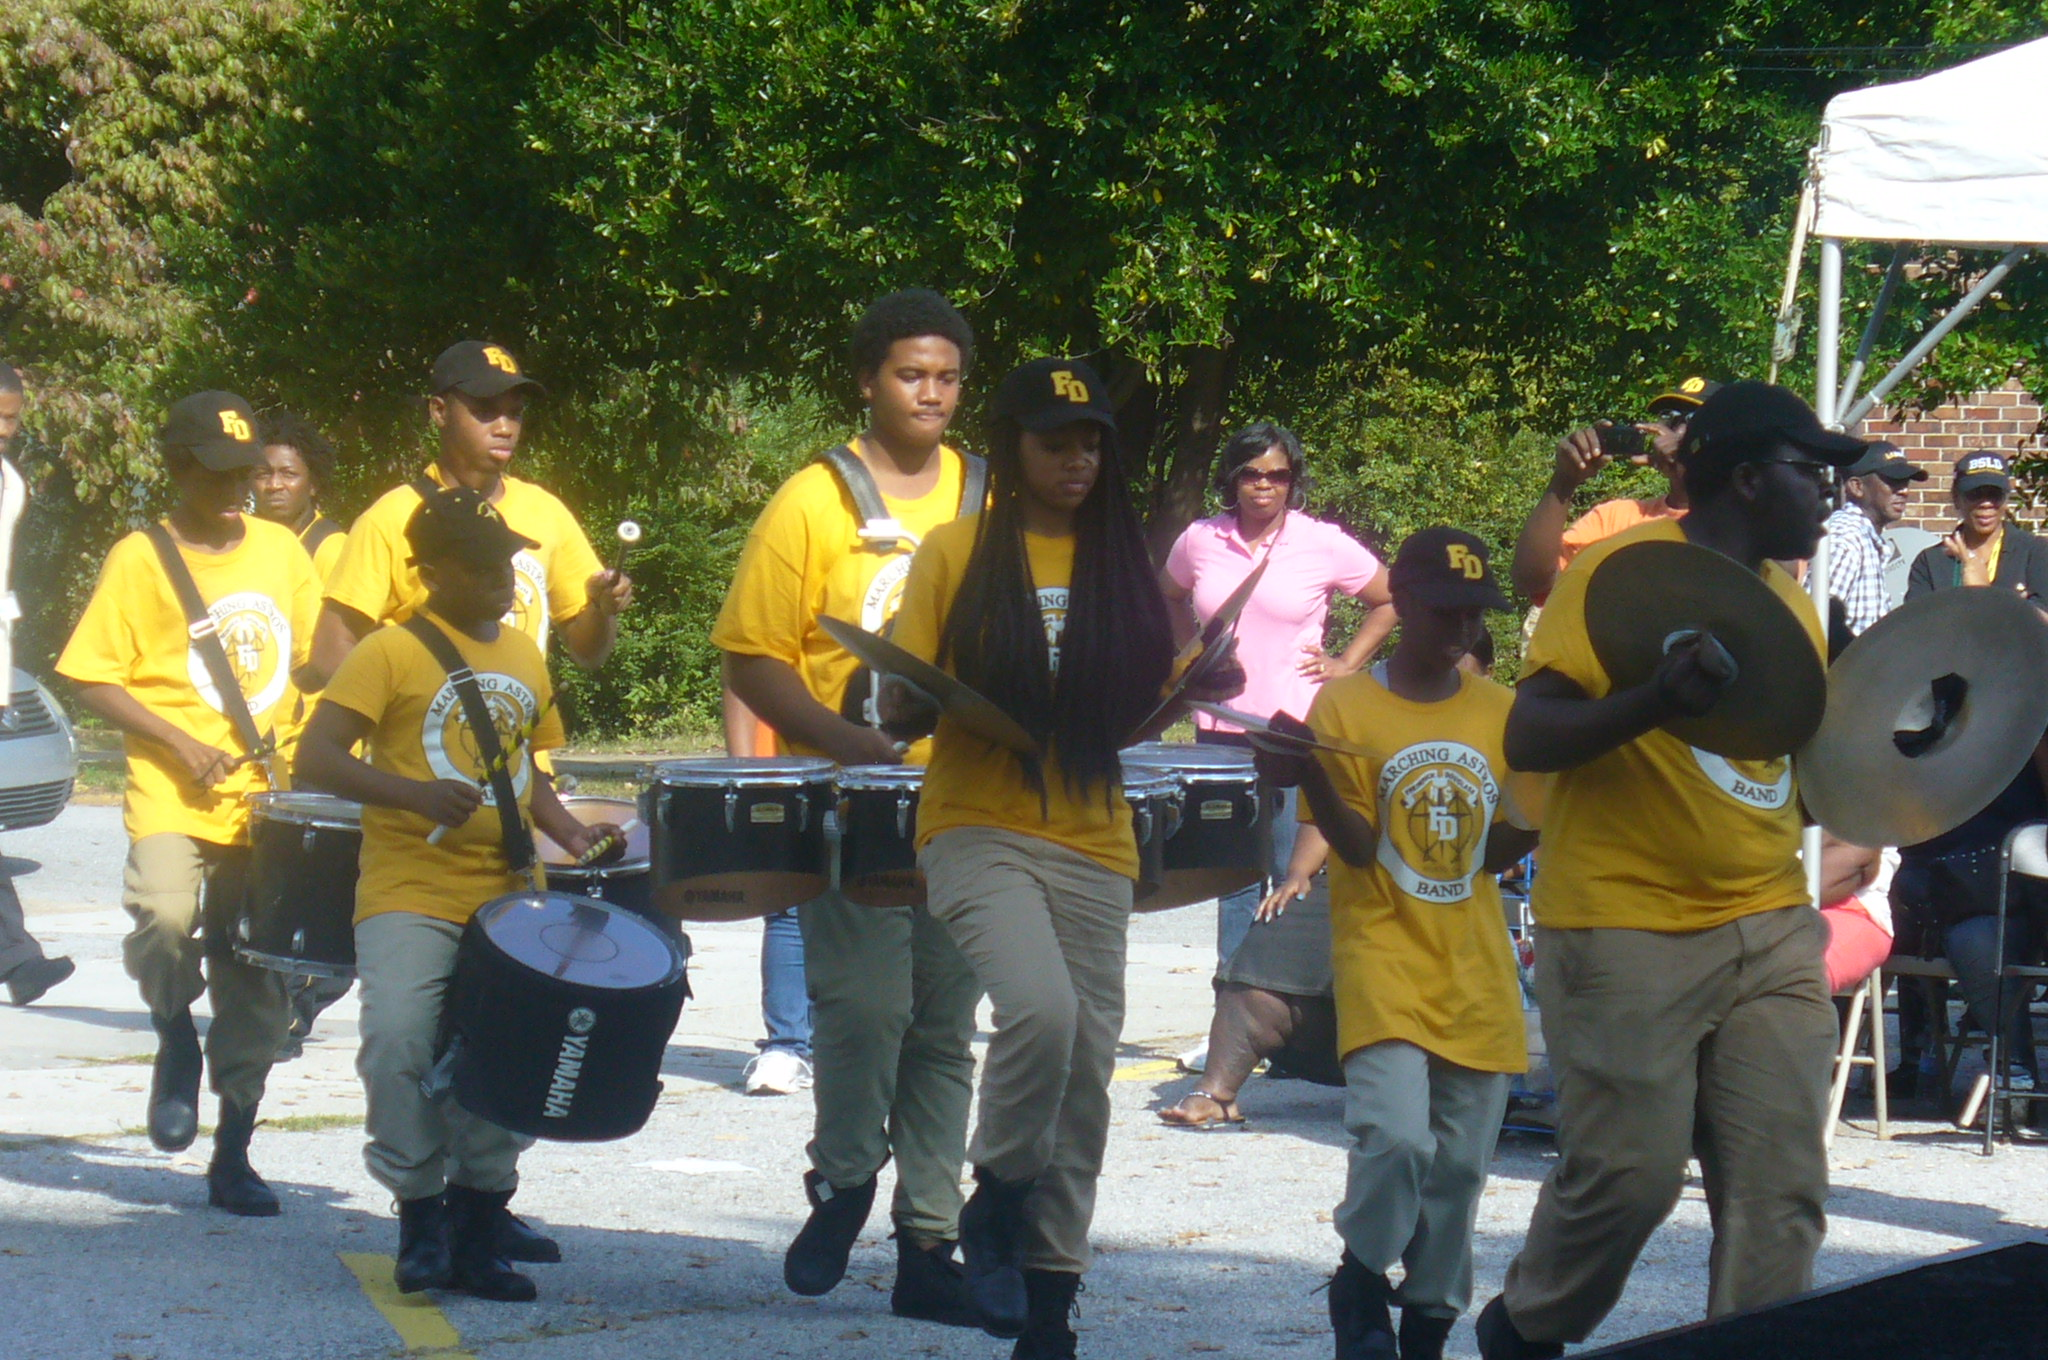 Drum line competitors. Going for the gold.